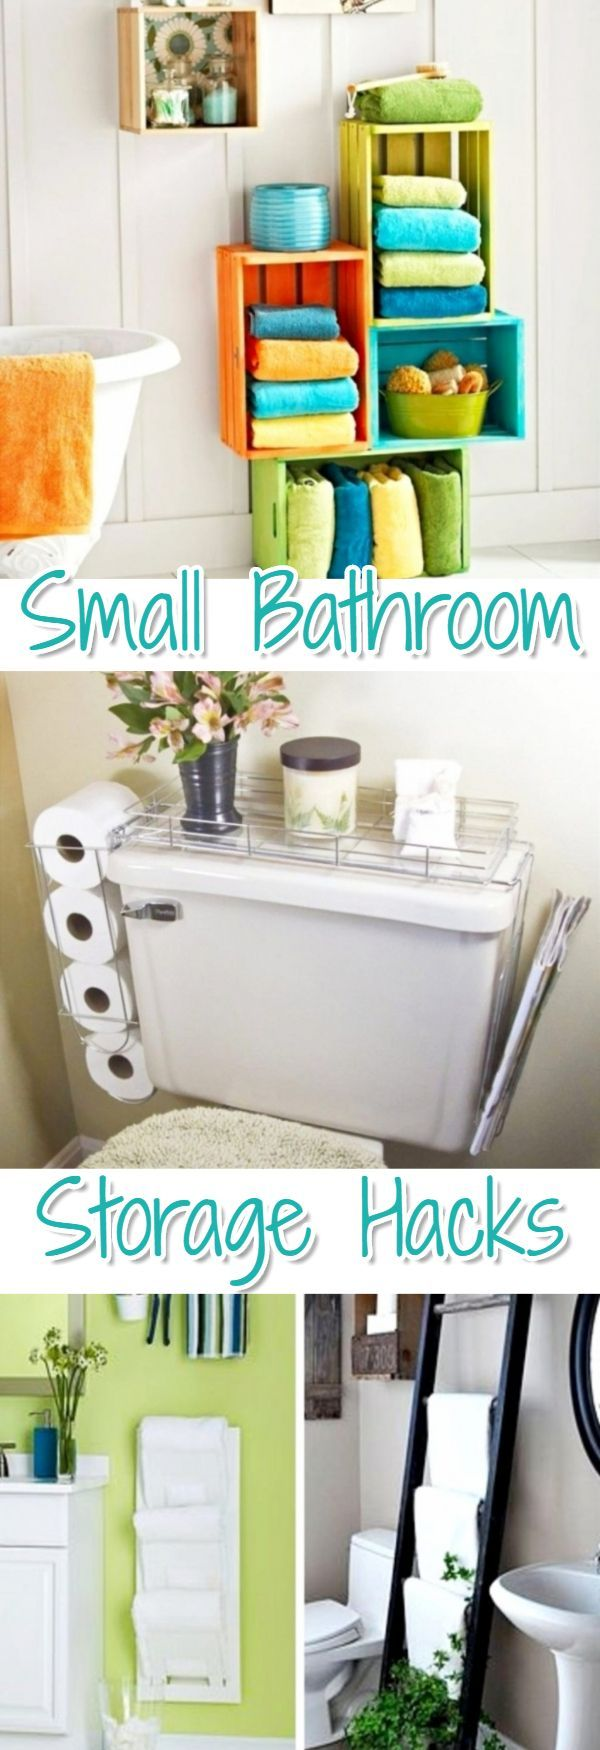 Small bathroom storage solutions - storage ideas for small bedrooms - great DIY ideas and hacks for all small spaces